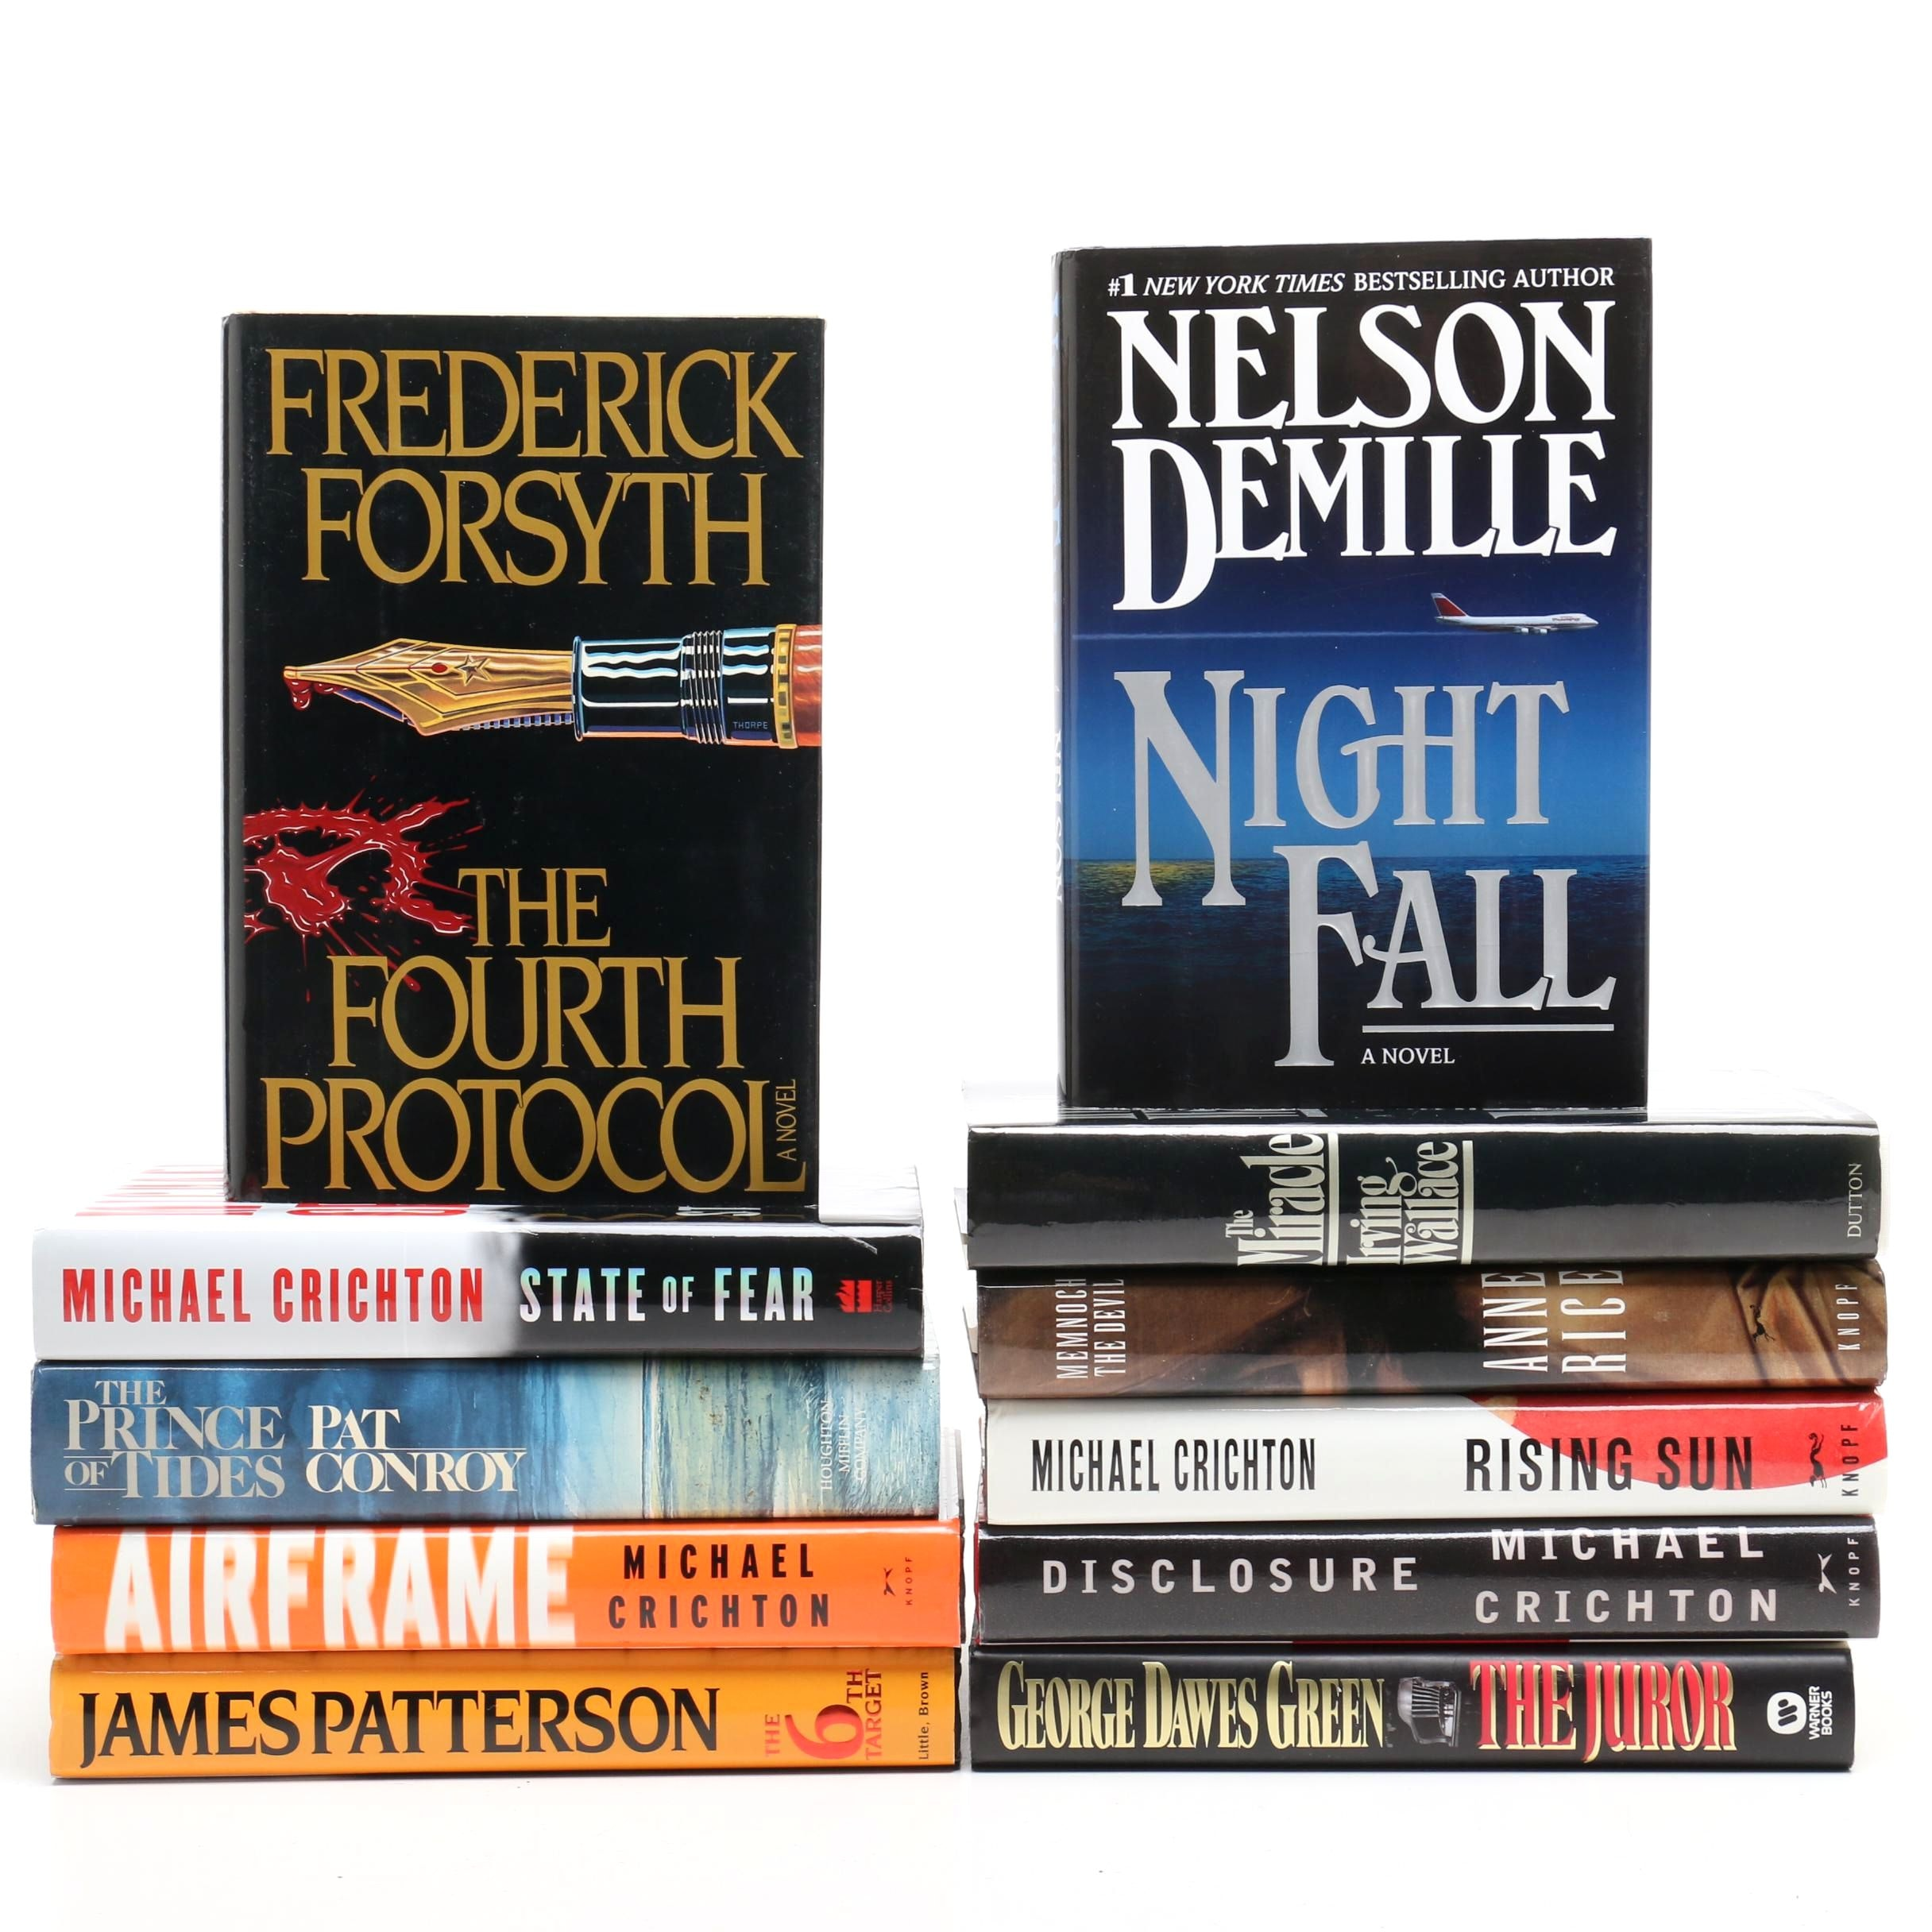 Book Collection of Various Genres including Authors Crichton, Forsyth and Others